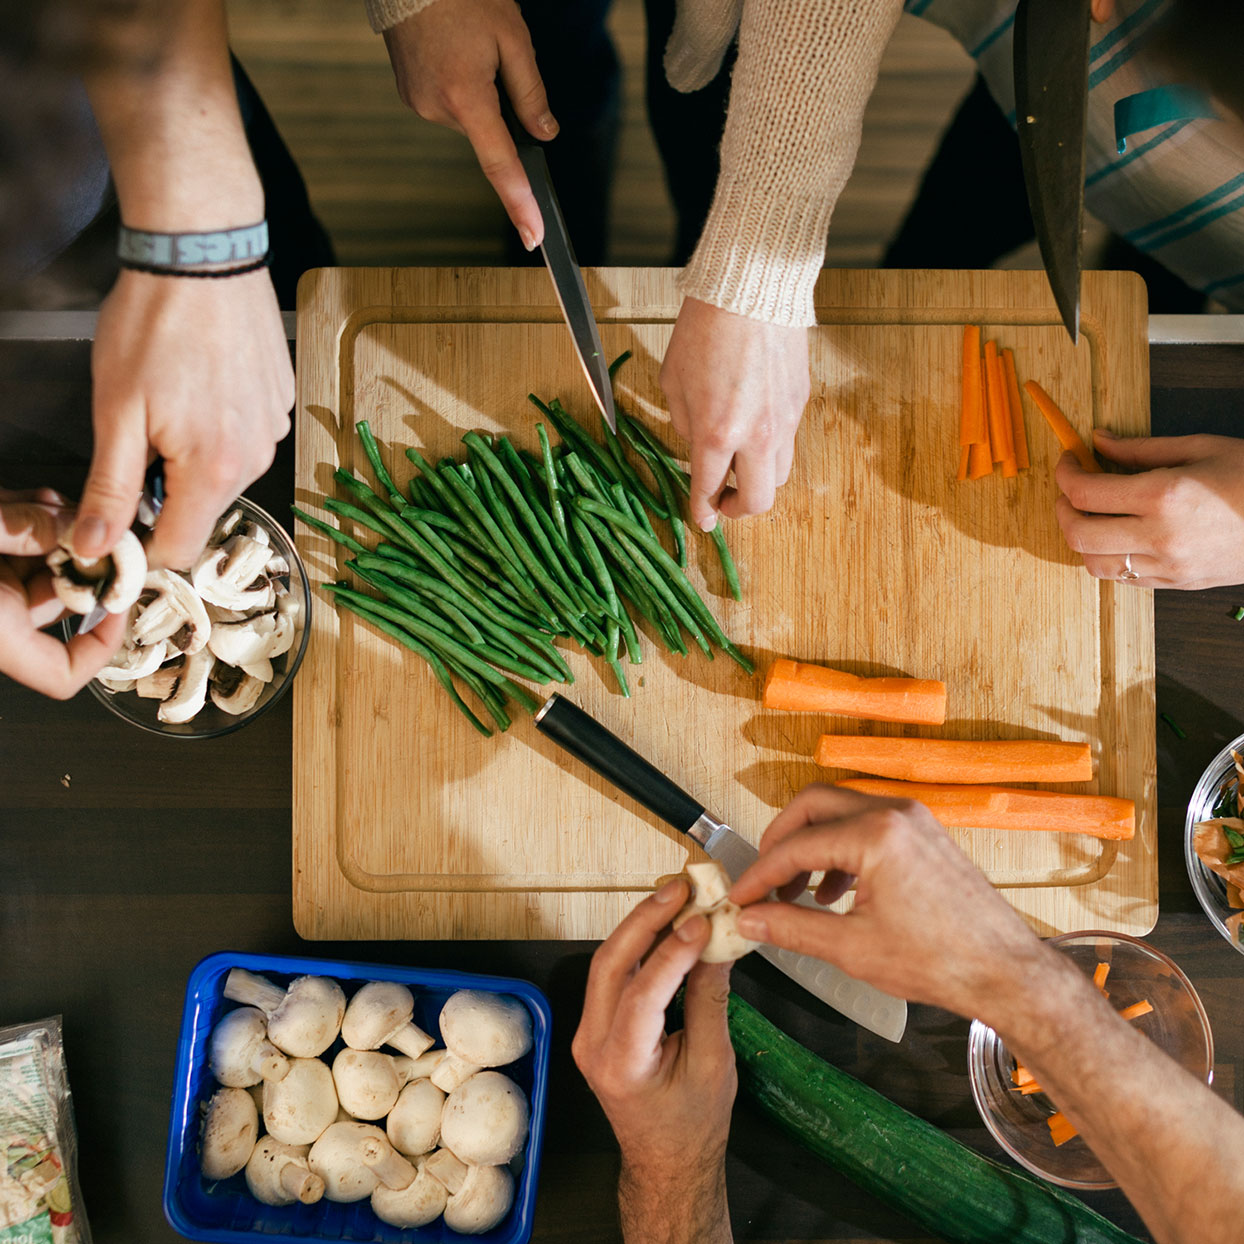 multiple people chopping and prepping various vegetables